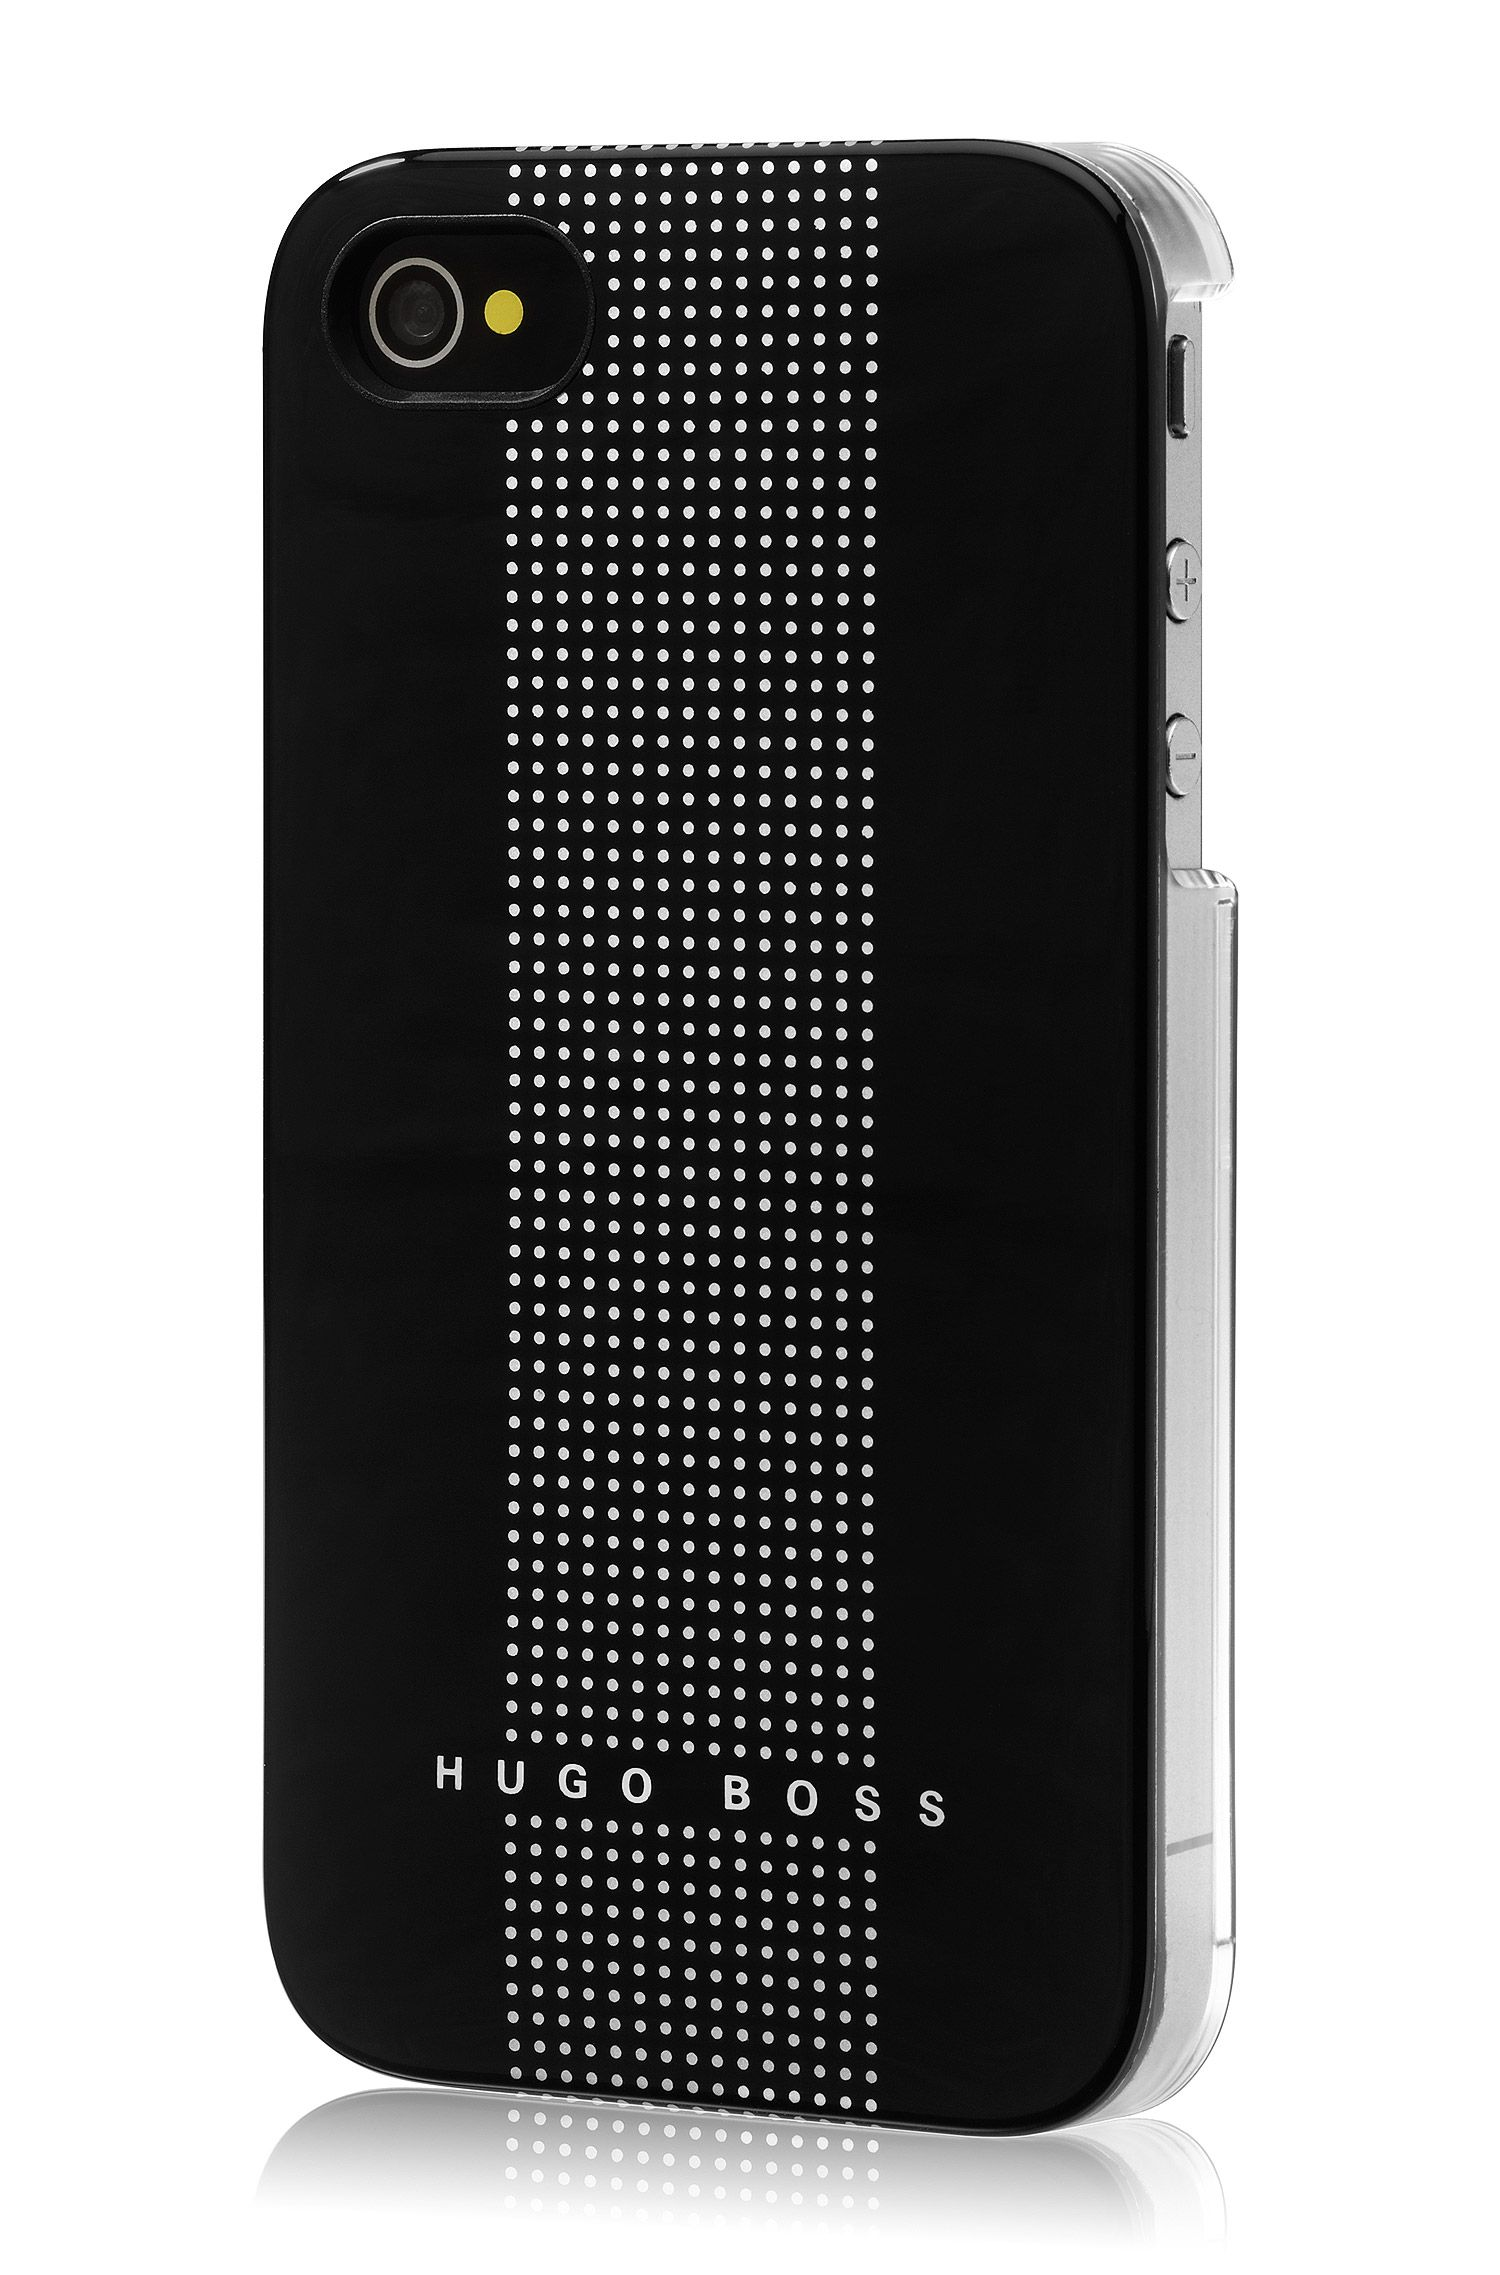 Coque rigide pour iPhone 4/4S, Dots Black